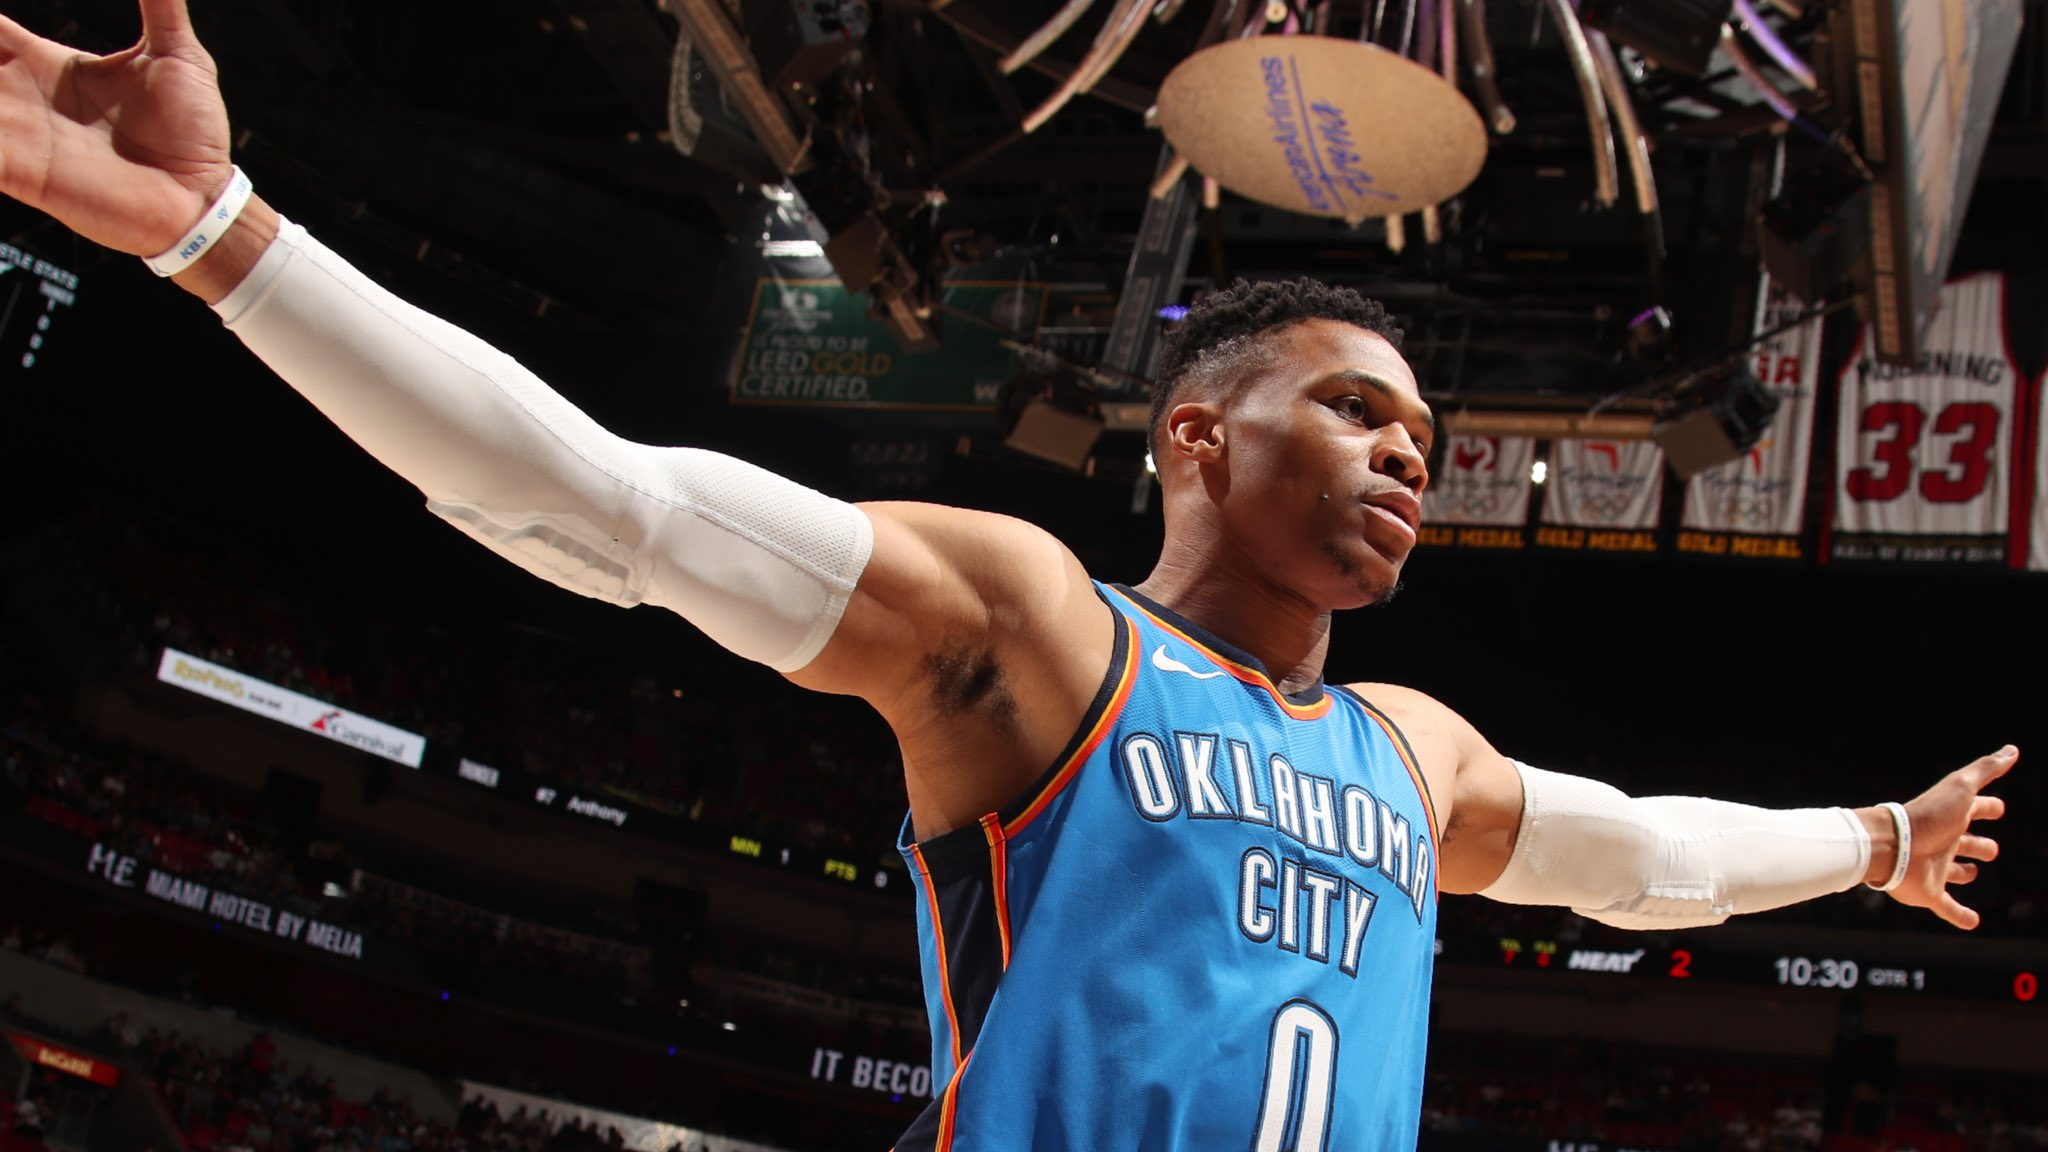 How about 9 boards in the first half? #WhyNot? https://t.co/y35wE6xaQp